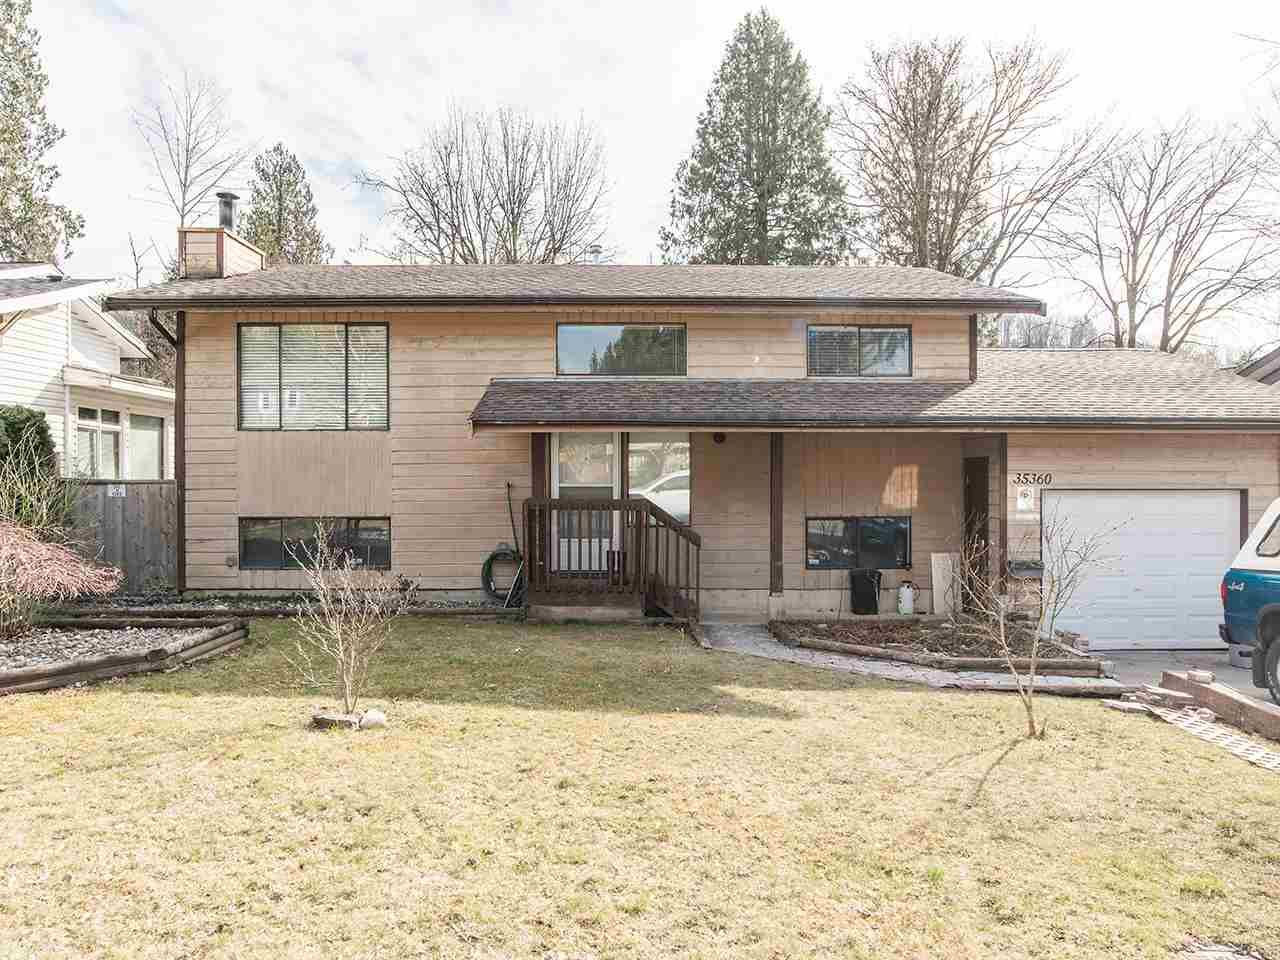 Main Photo: 35360 SELKIRK Avenue in Abbotsford: Abbotsford East House for sale : MLS®# R2551708